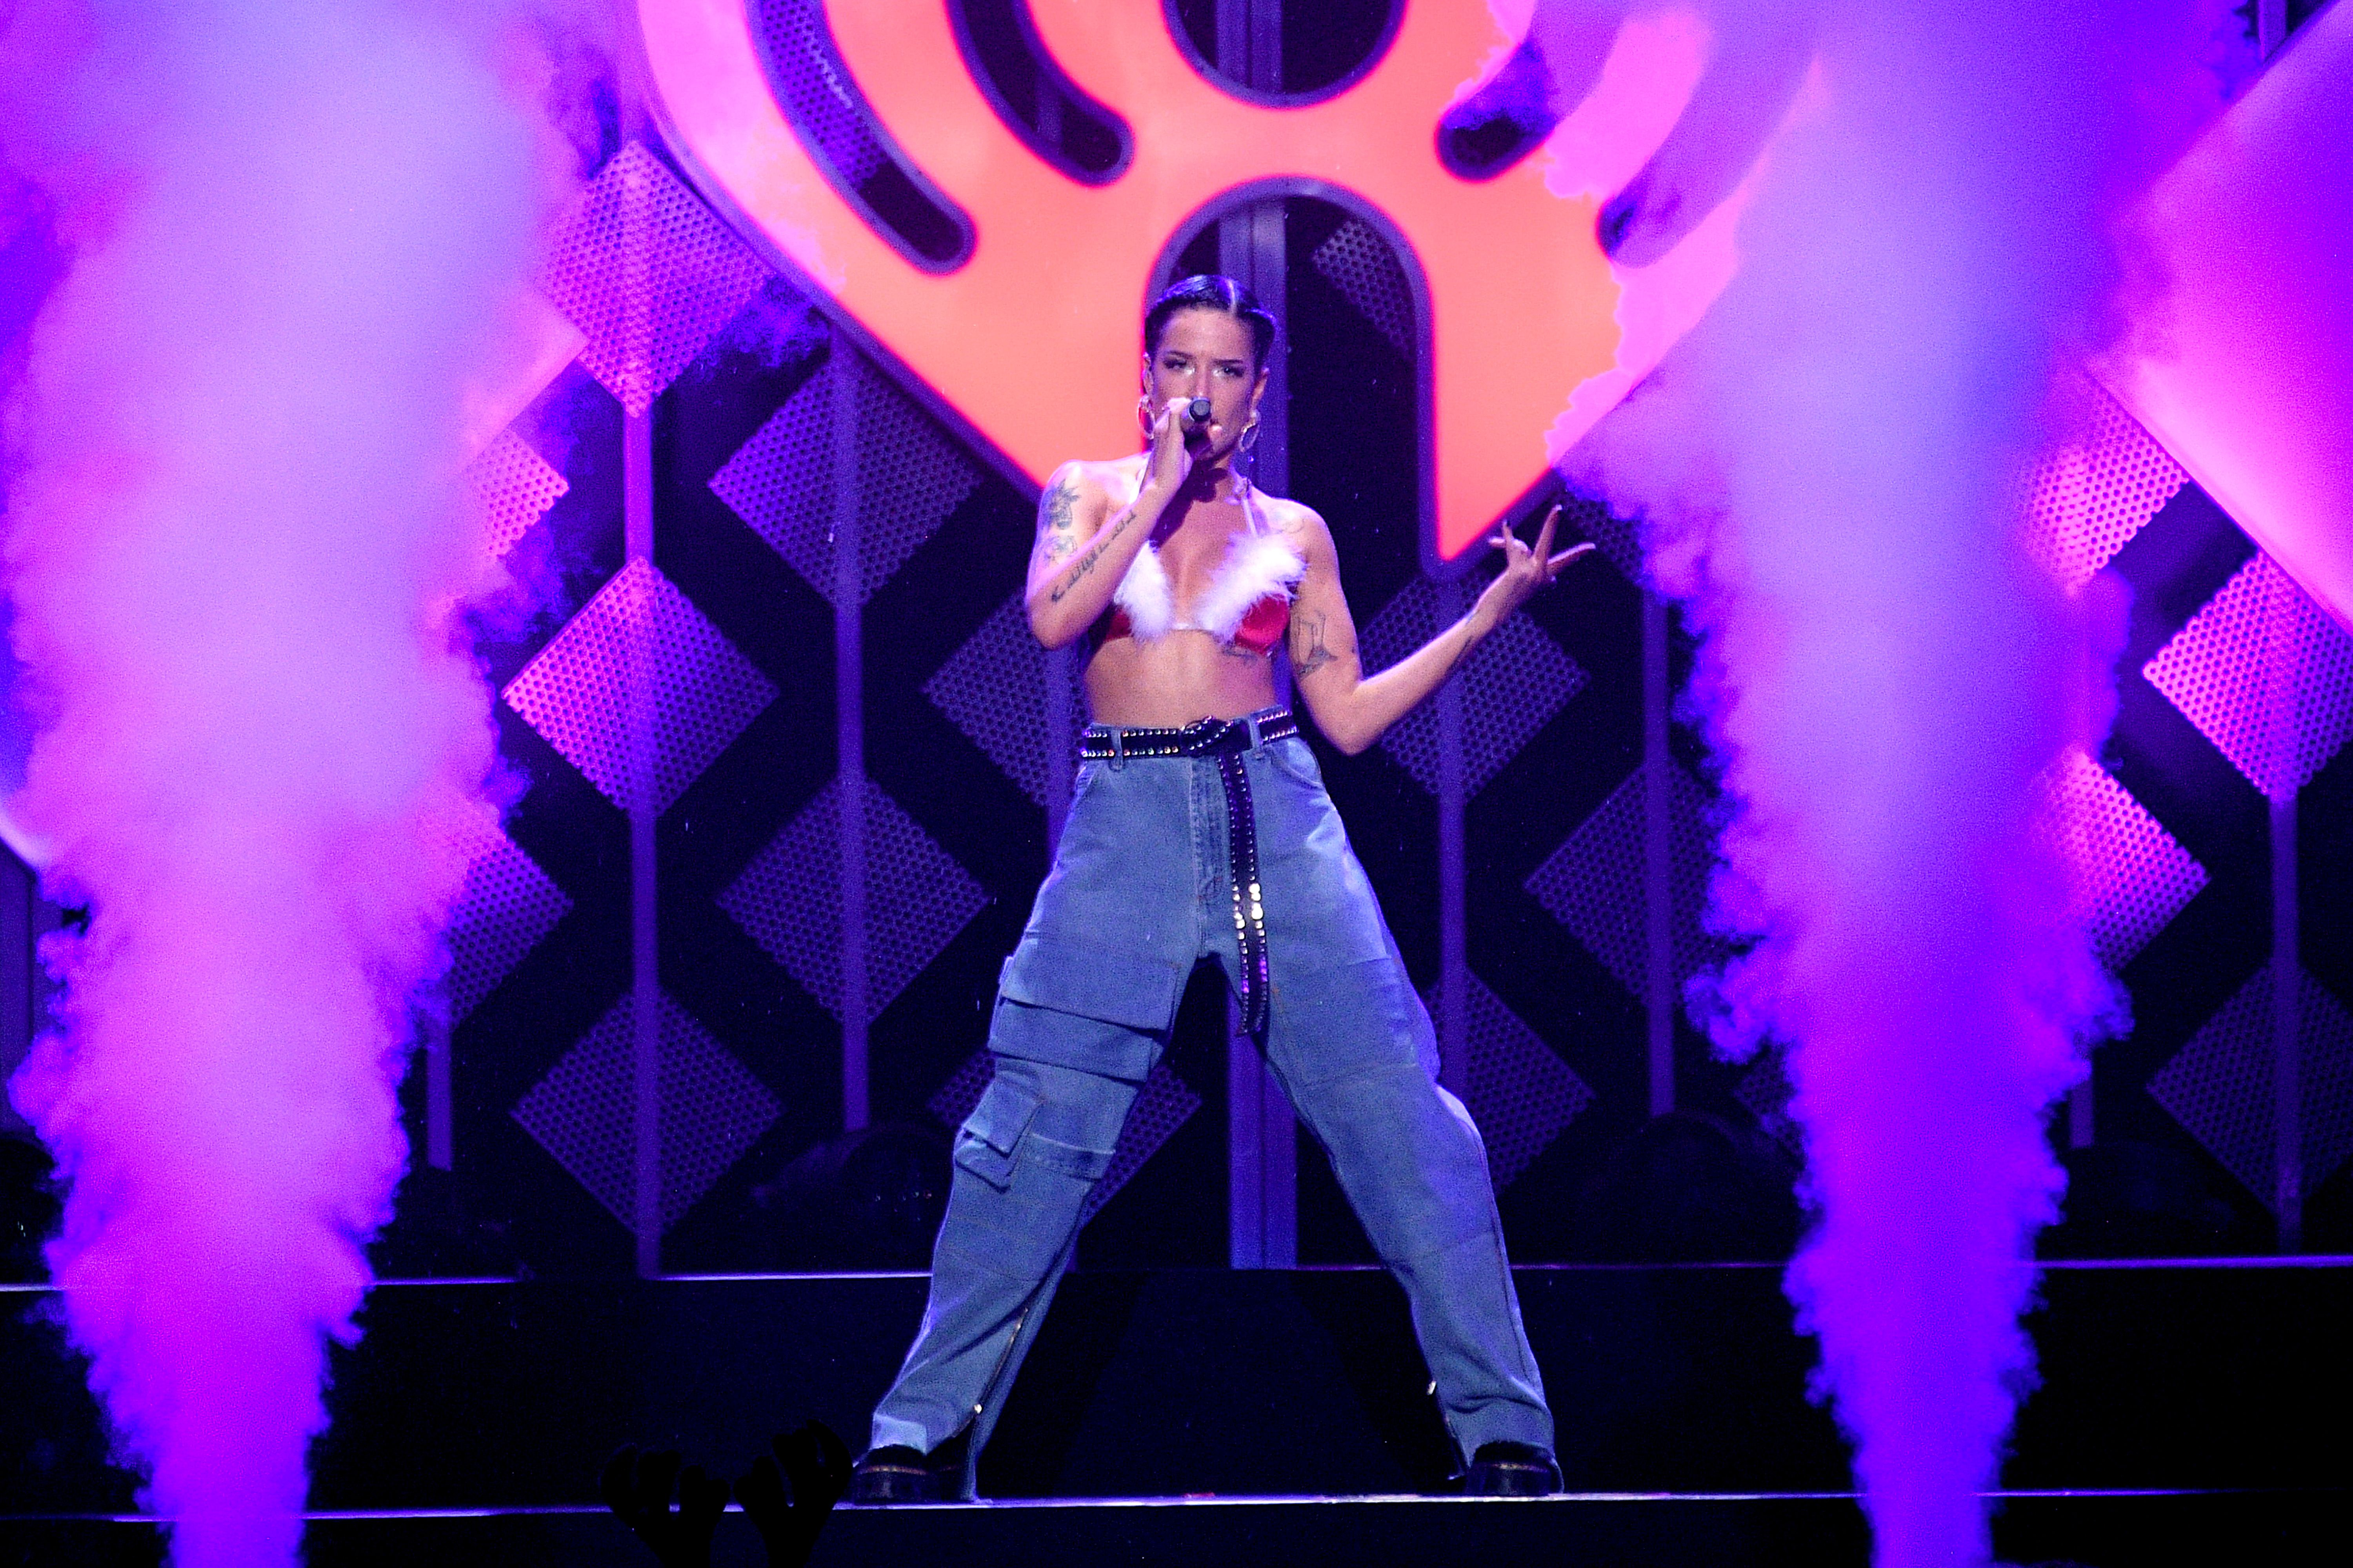 Halsey holds a microphone while posing on stage